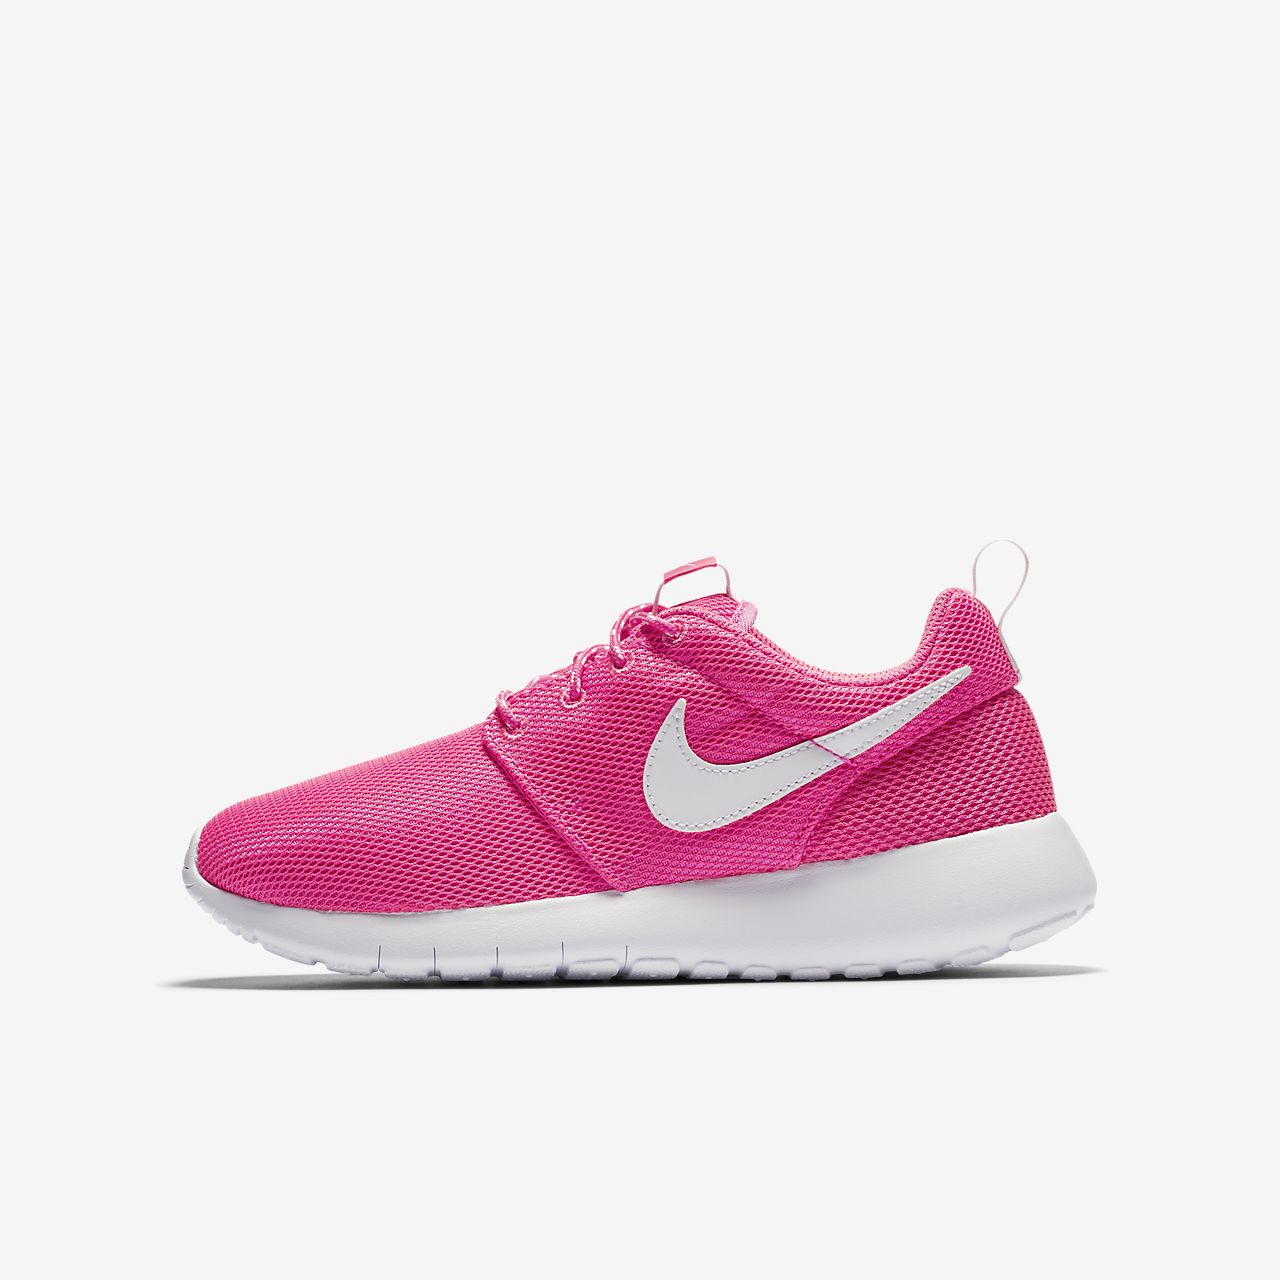 0cec08c0bdc04 Nike Roshe One Older Kids  Shoe. Nike.com GB